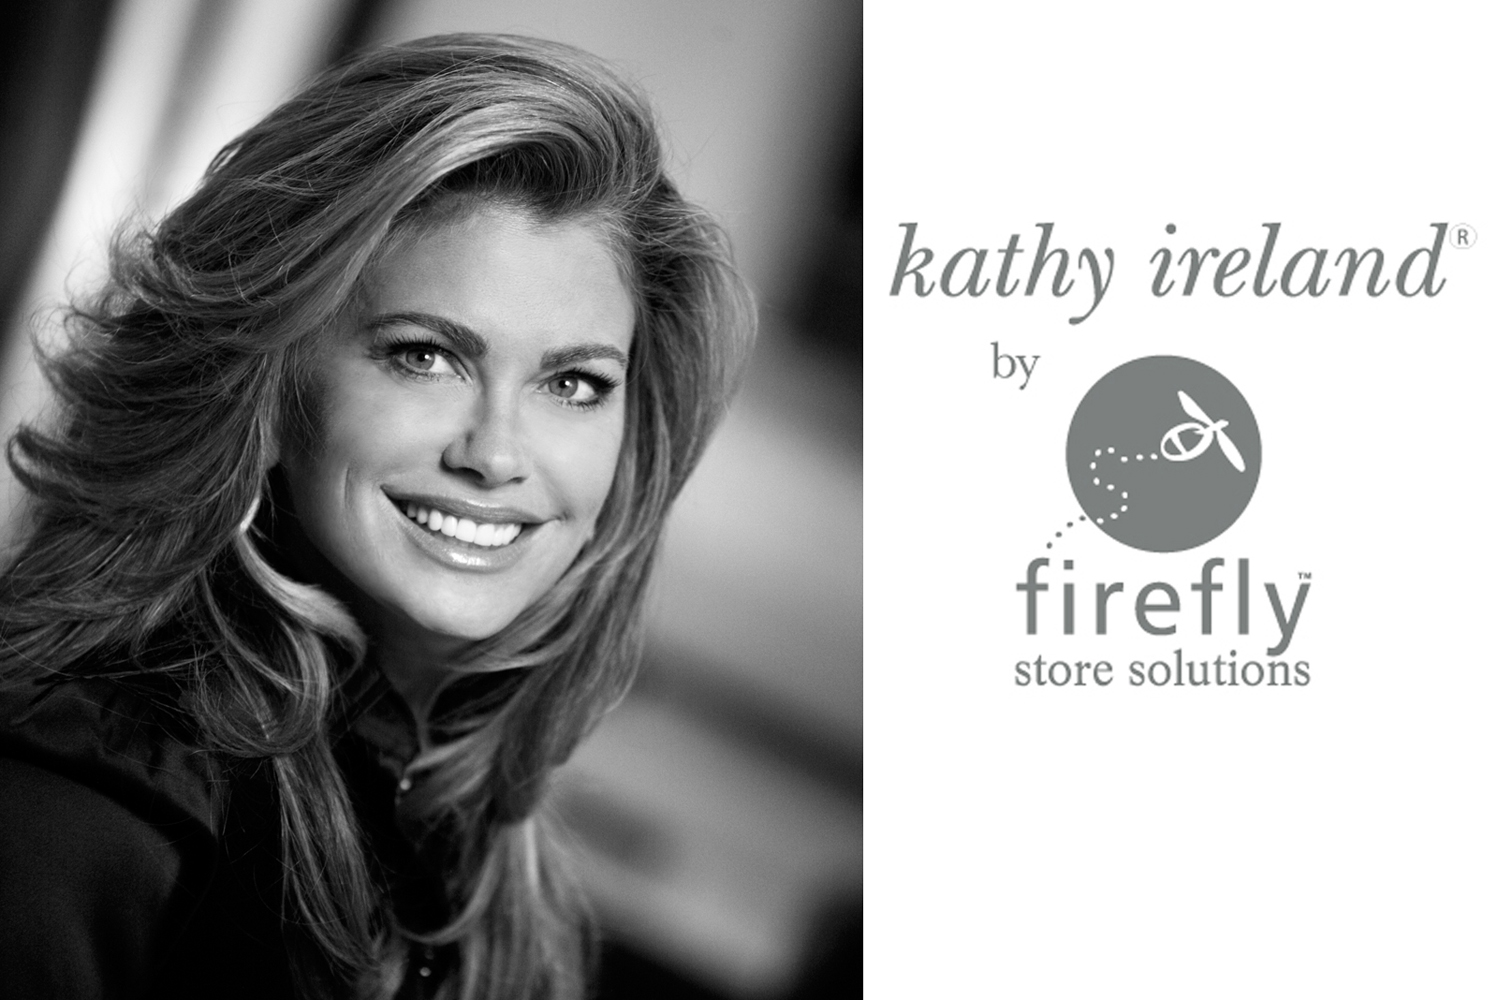 """Why Being """"Eco-Friendly"""" is Important for Your Business By kathy ireland"""